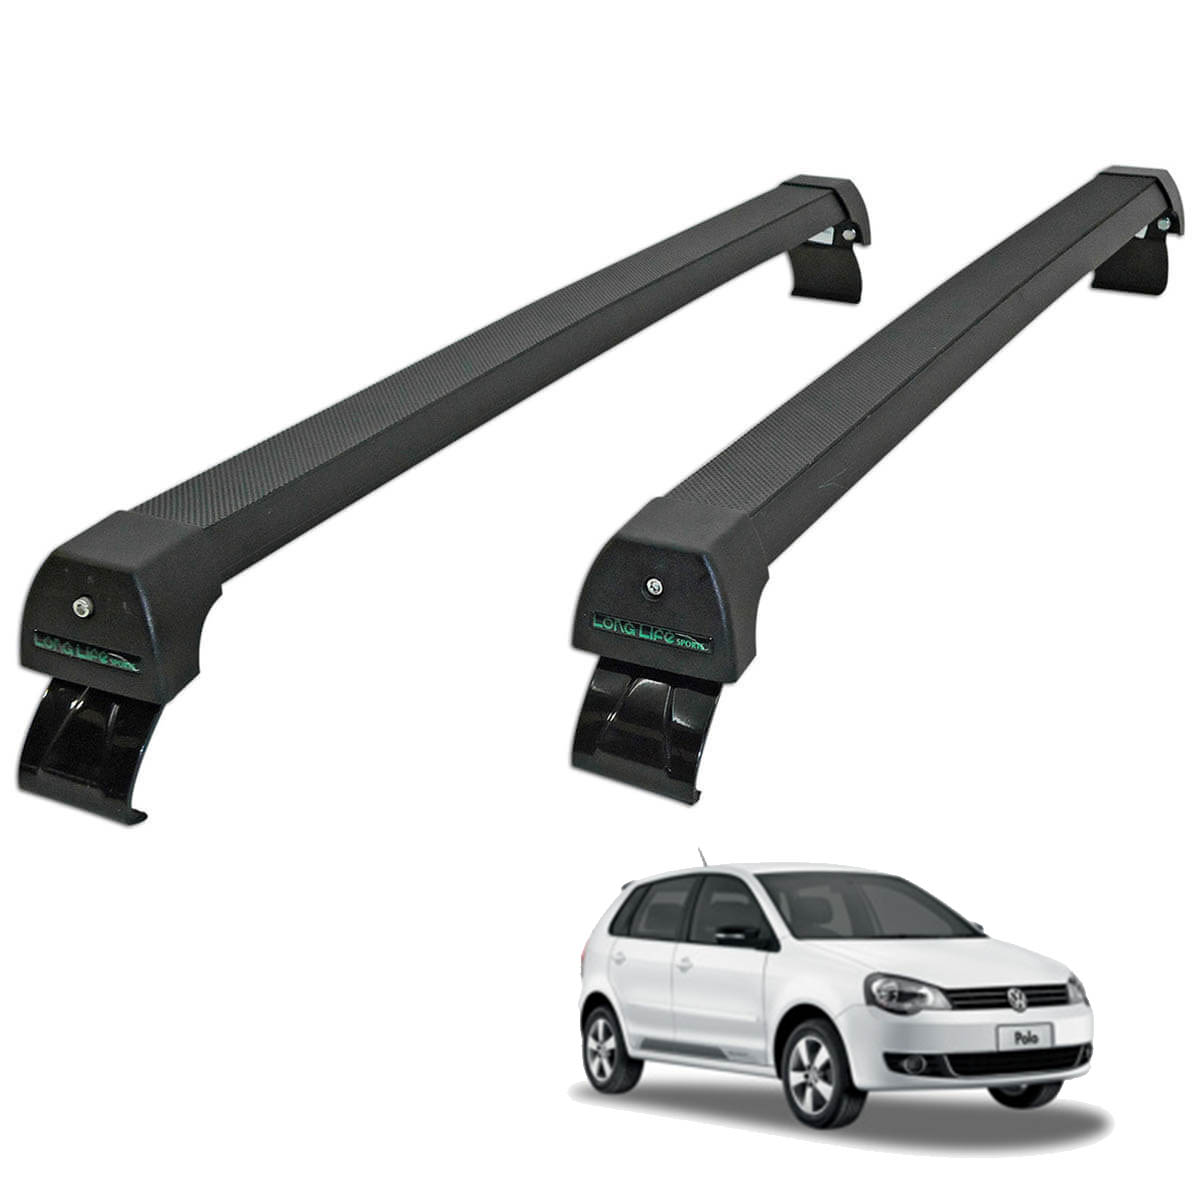 Rack de teto Polo hatch ou sedan 2003 a 2015 Long Life Sports preto